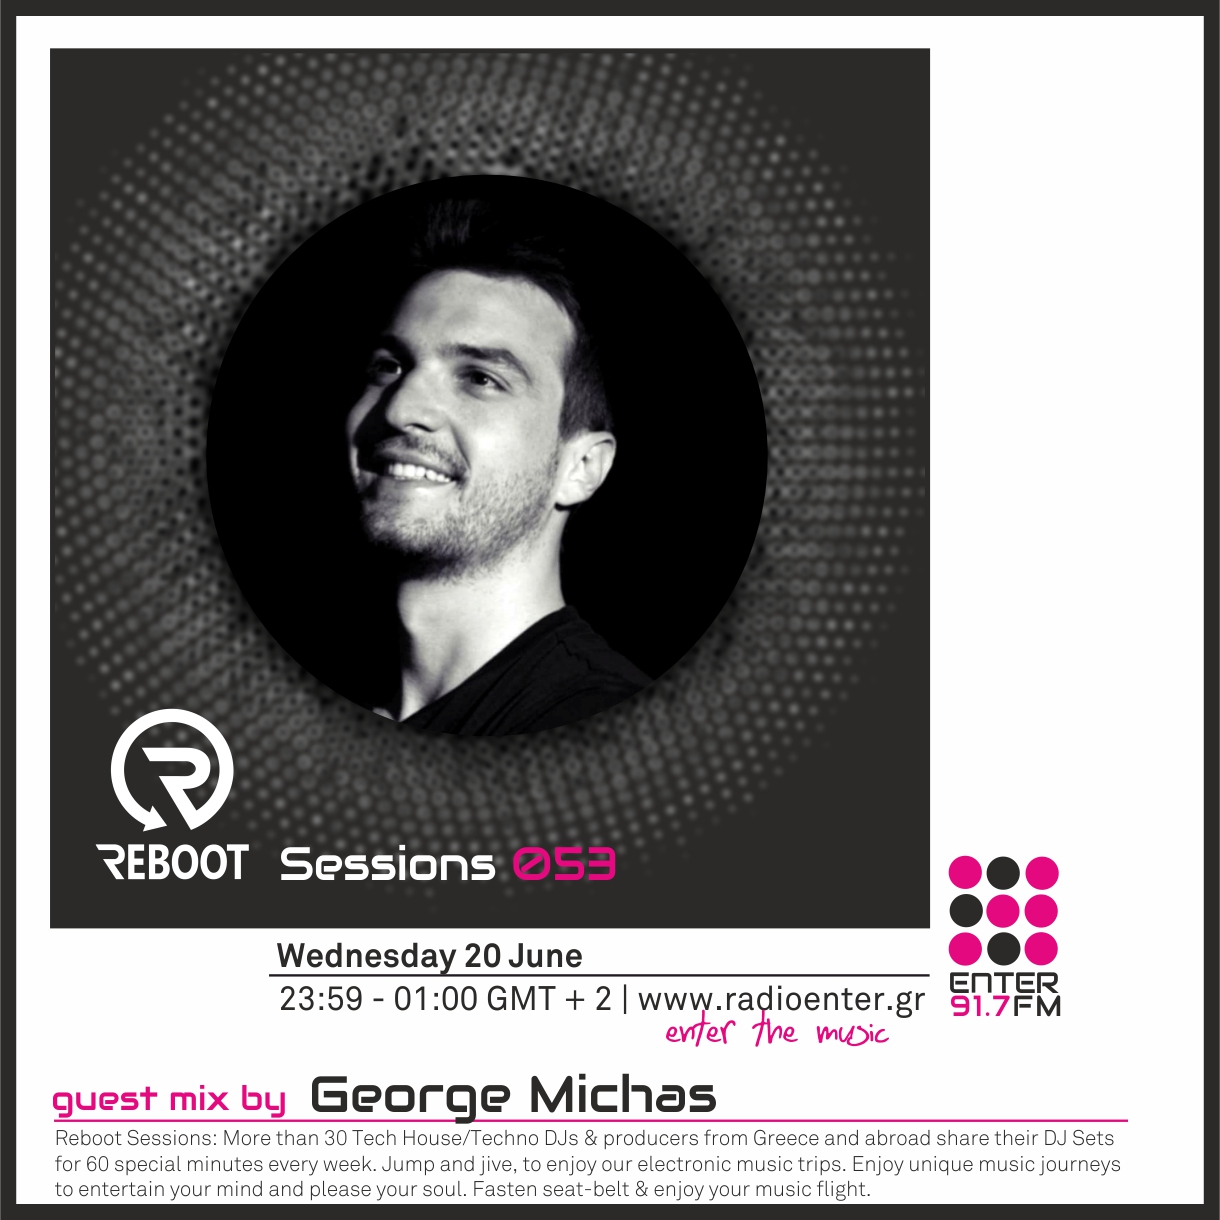 2018.06.20 - Reboot Sessions 053 - George Michas